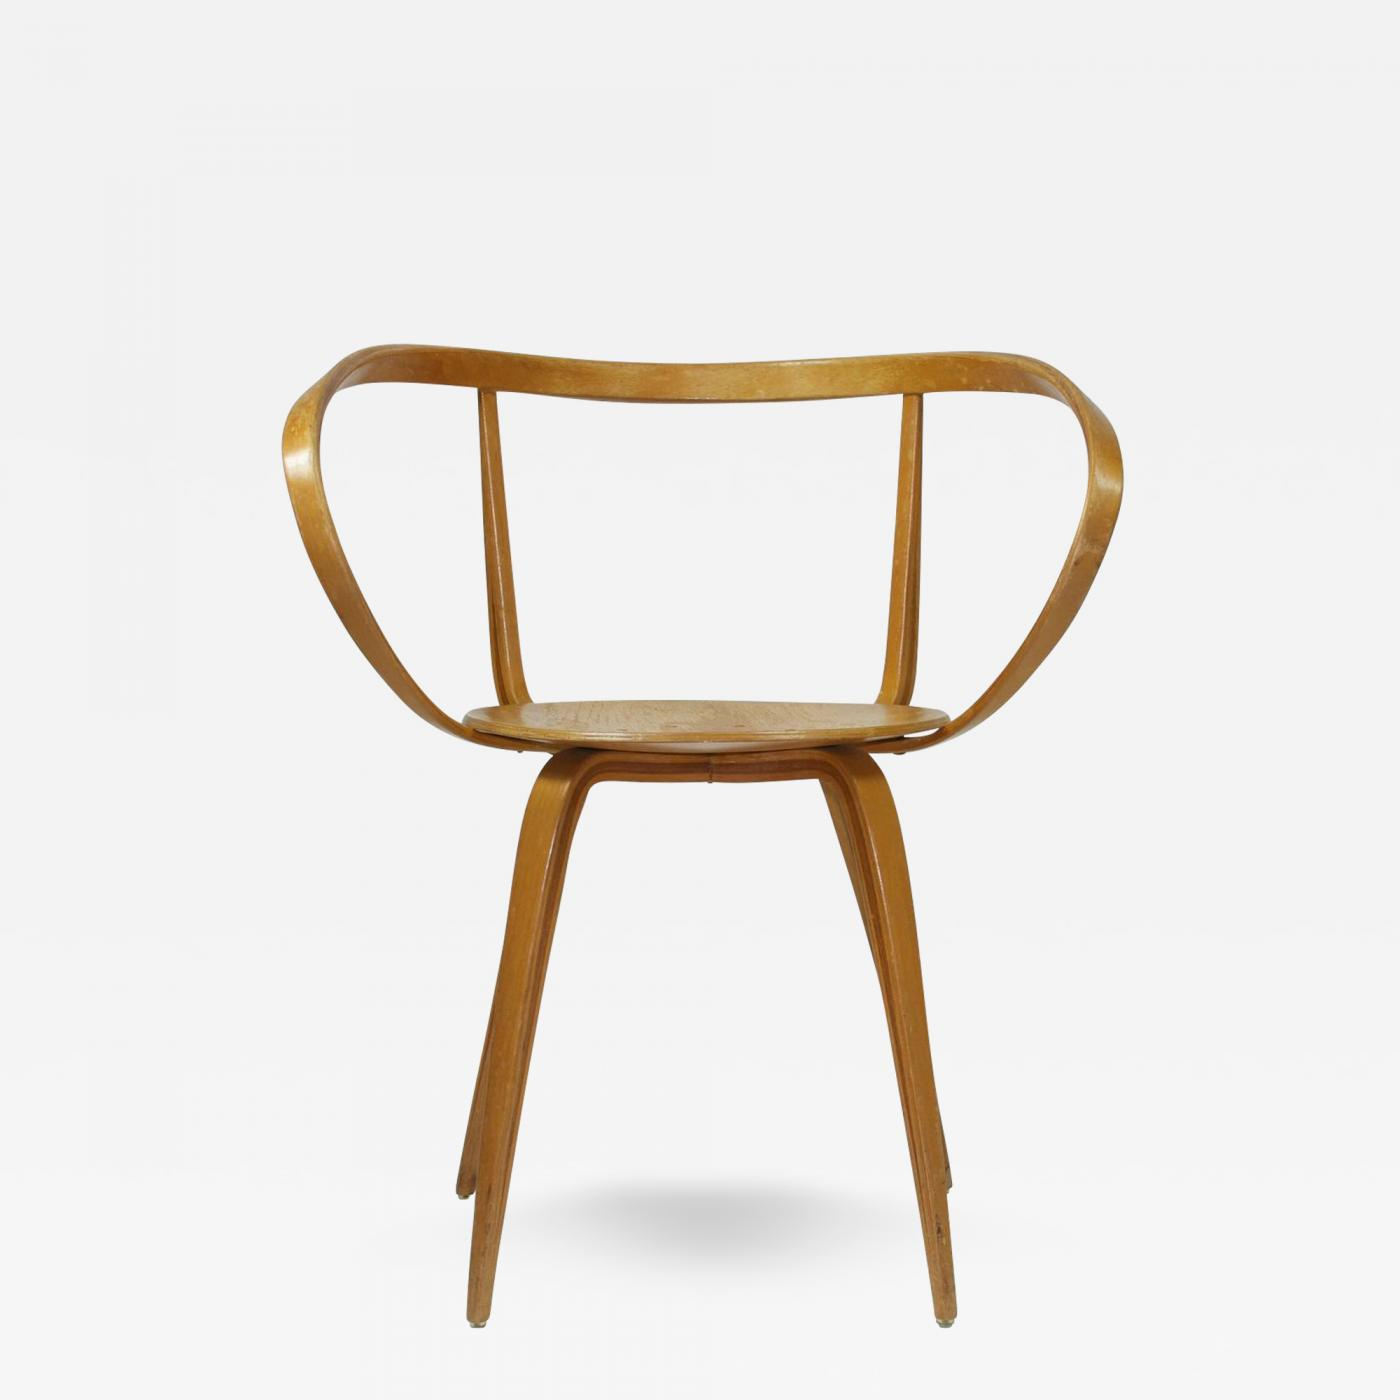 Charming Listings / Furniture / Seating / Armchairs · George Nelson George Nelson Pretzel  Chair